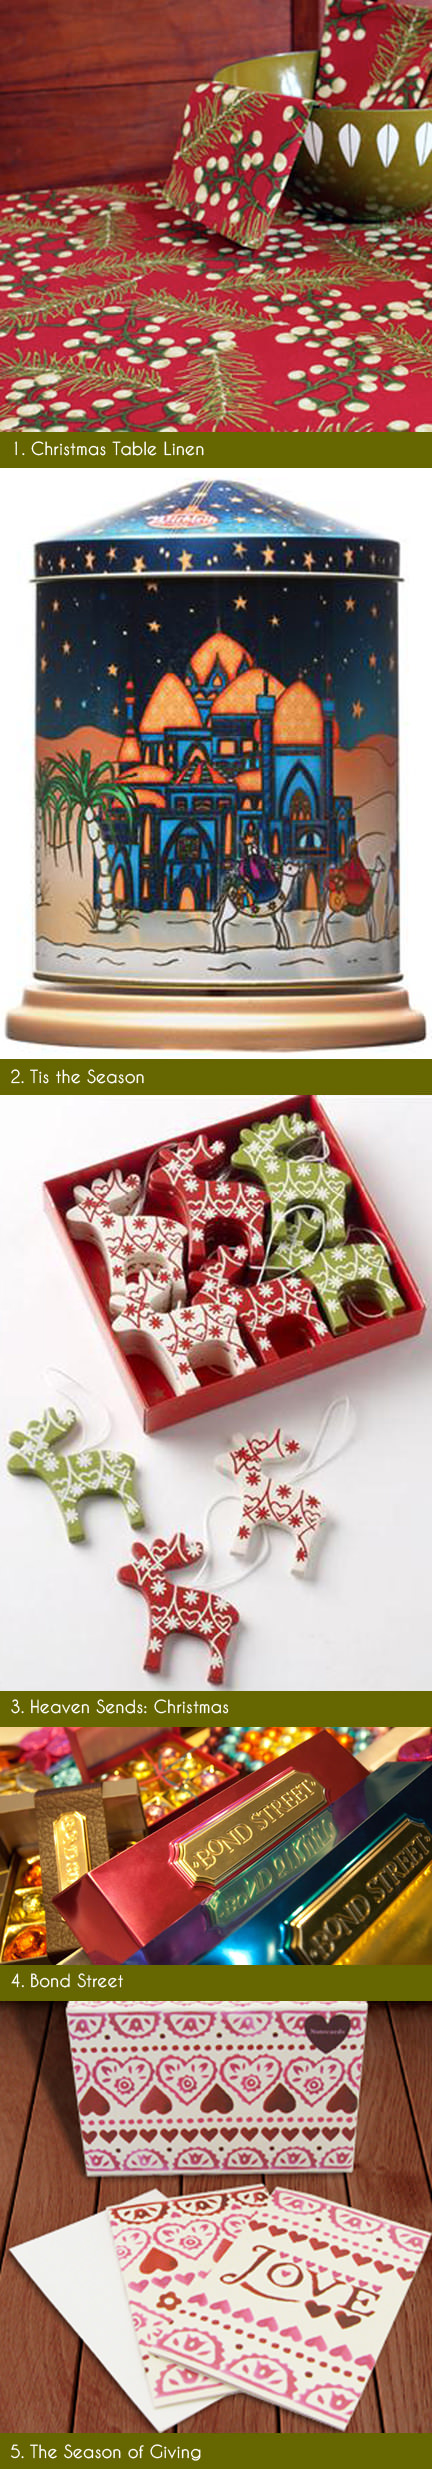 selection of festive Christmas items available on the Achica website